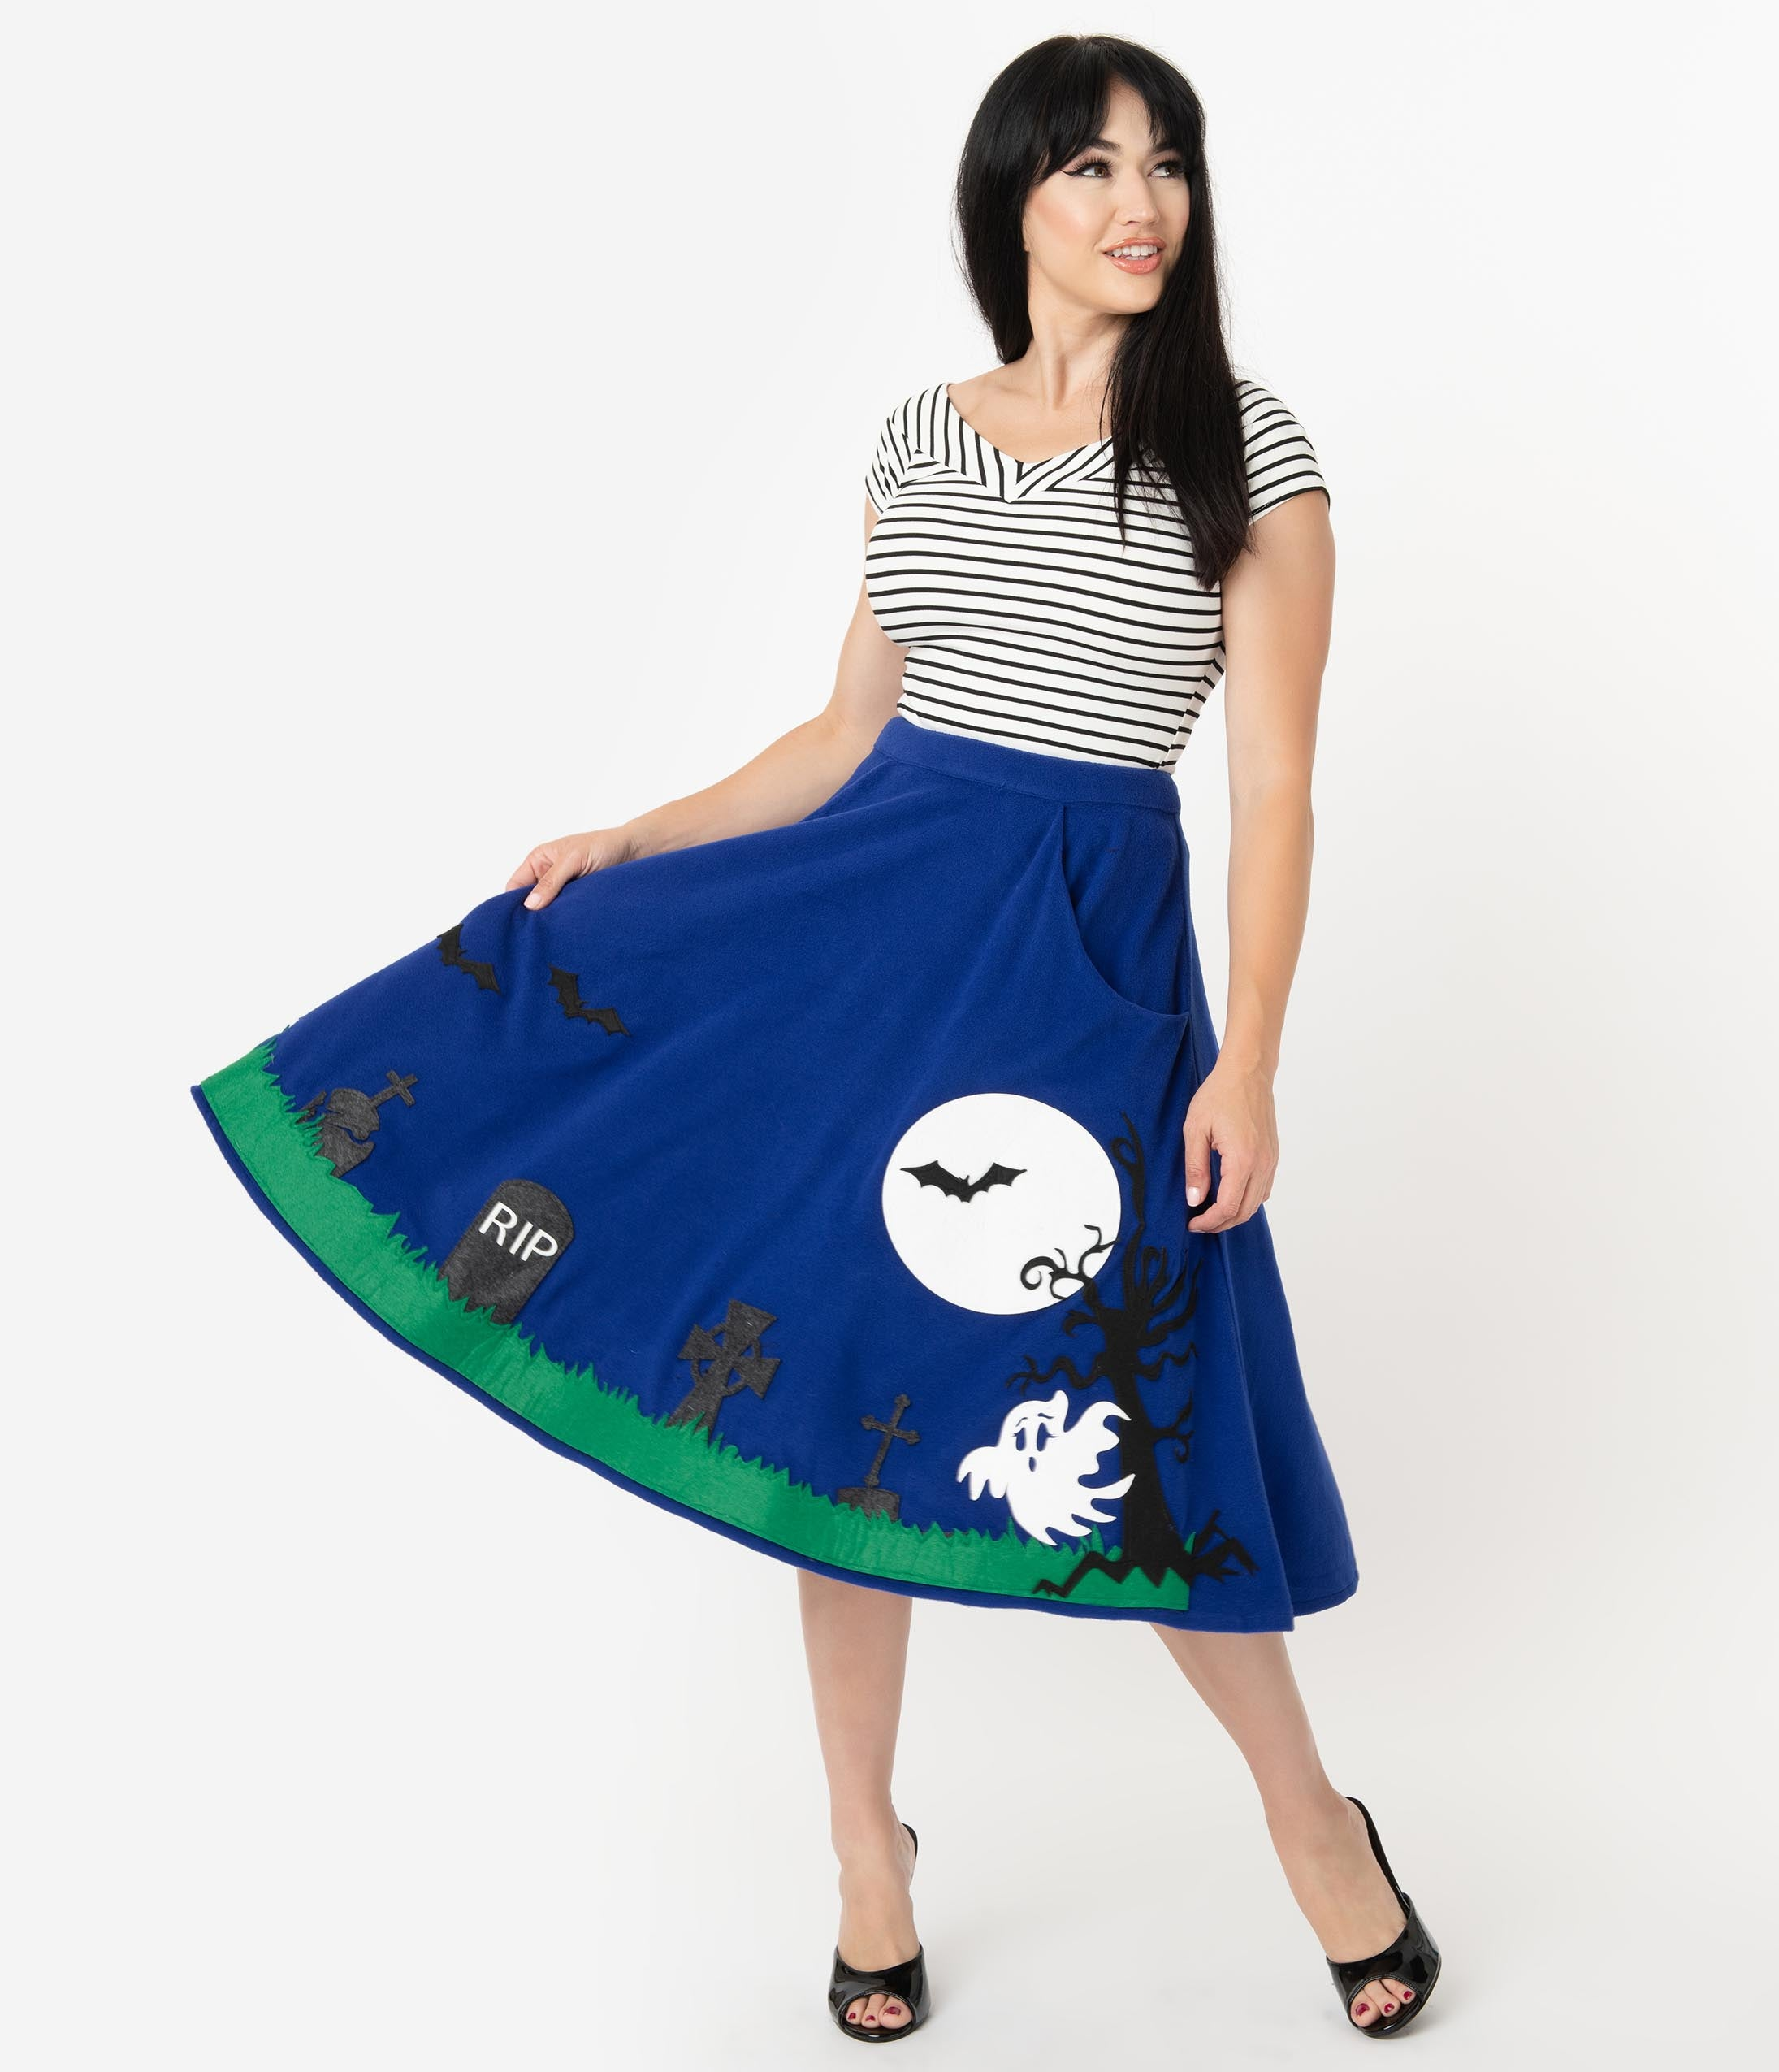 1950s Swing Skirt, Poodle Skirt, Pencil Skirts Unique Vintage 1950S Blue Moonlit Graveyard Soda Shop Swing Skirt $78.00 AT vintagedancer.com